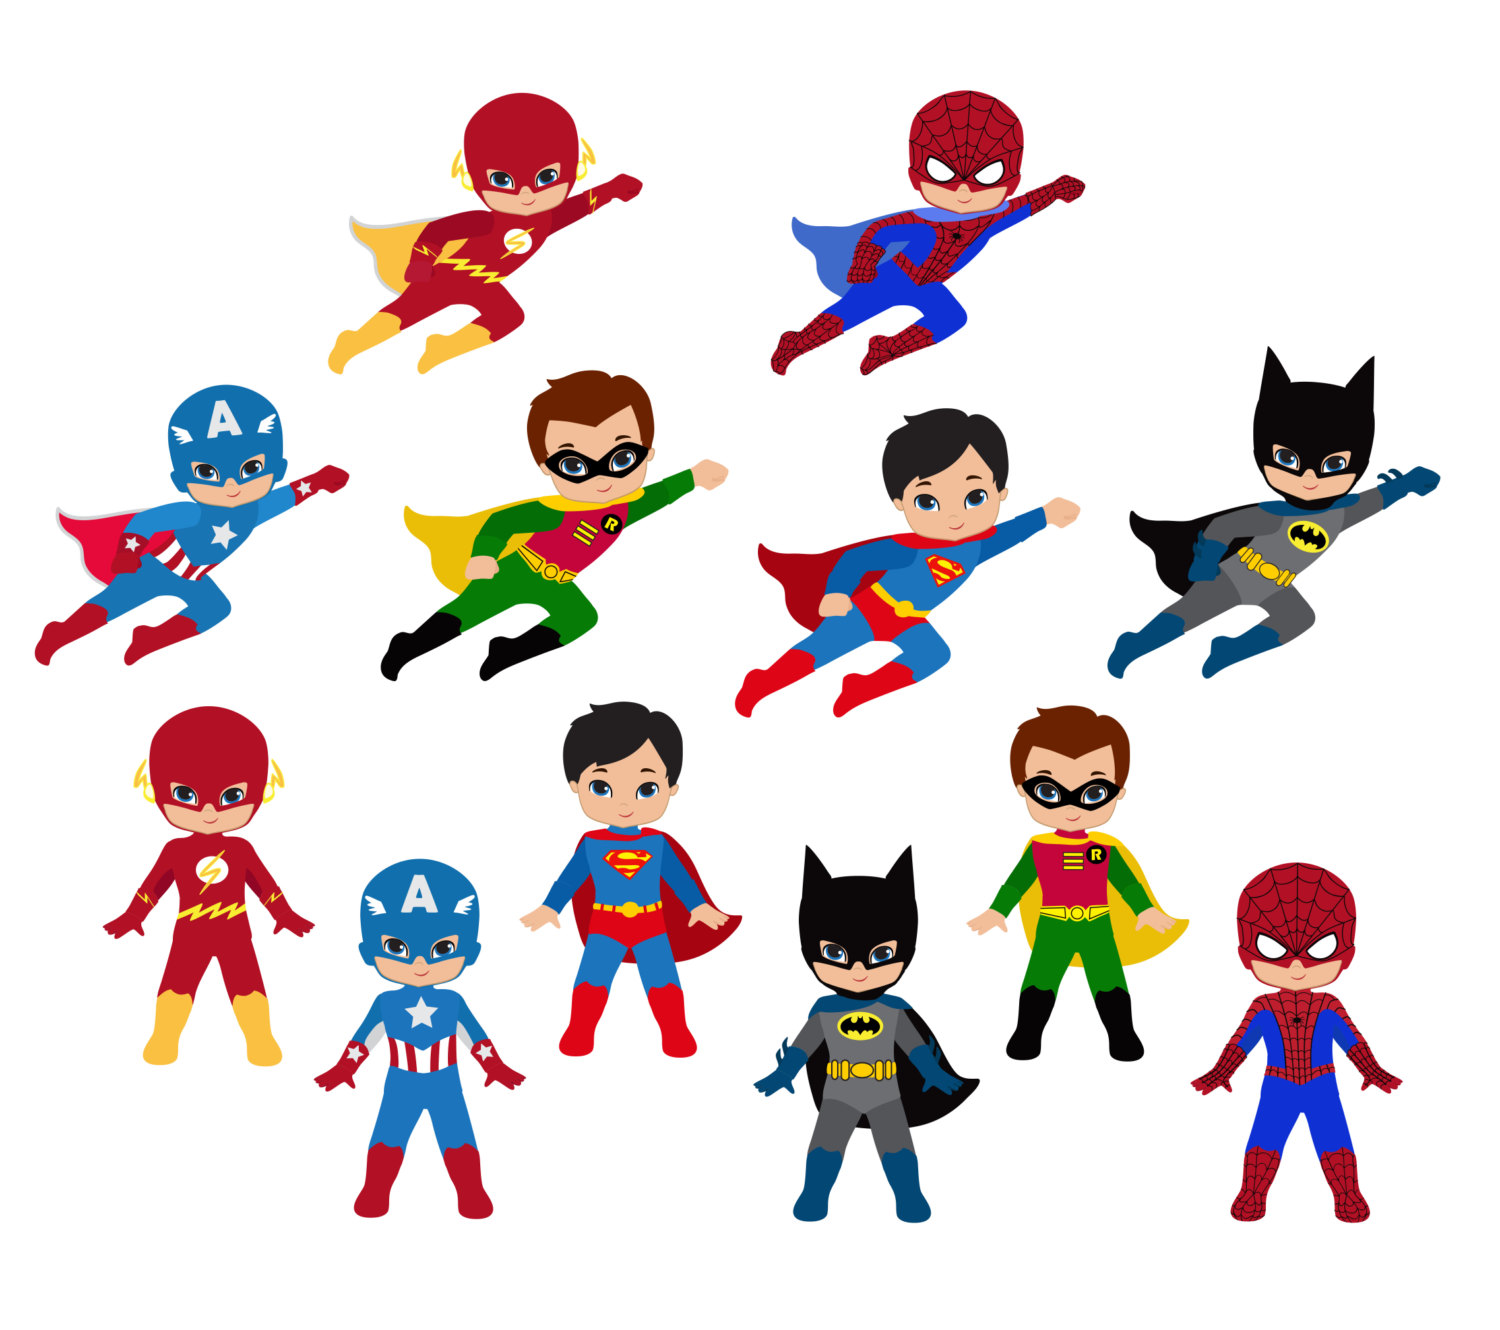 free superhero clipart | Fonts/Clipart f-free superhero clipart | Fonts/Clipart freebies | Pinterest | Clip art, Boys and Supergirl-10